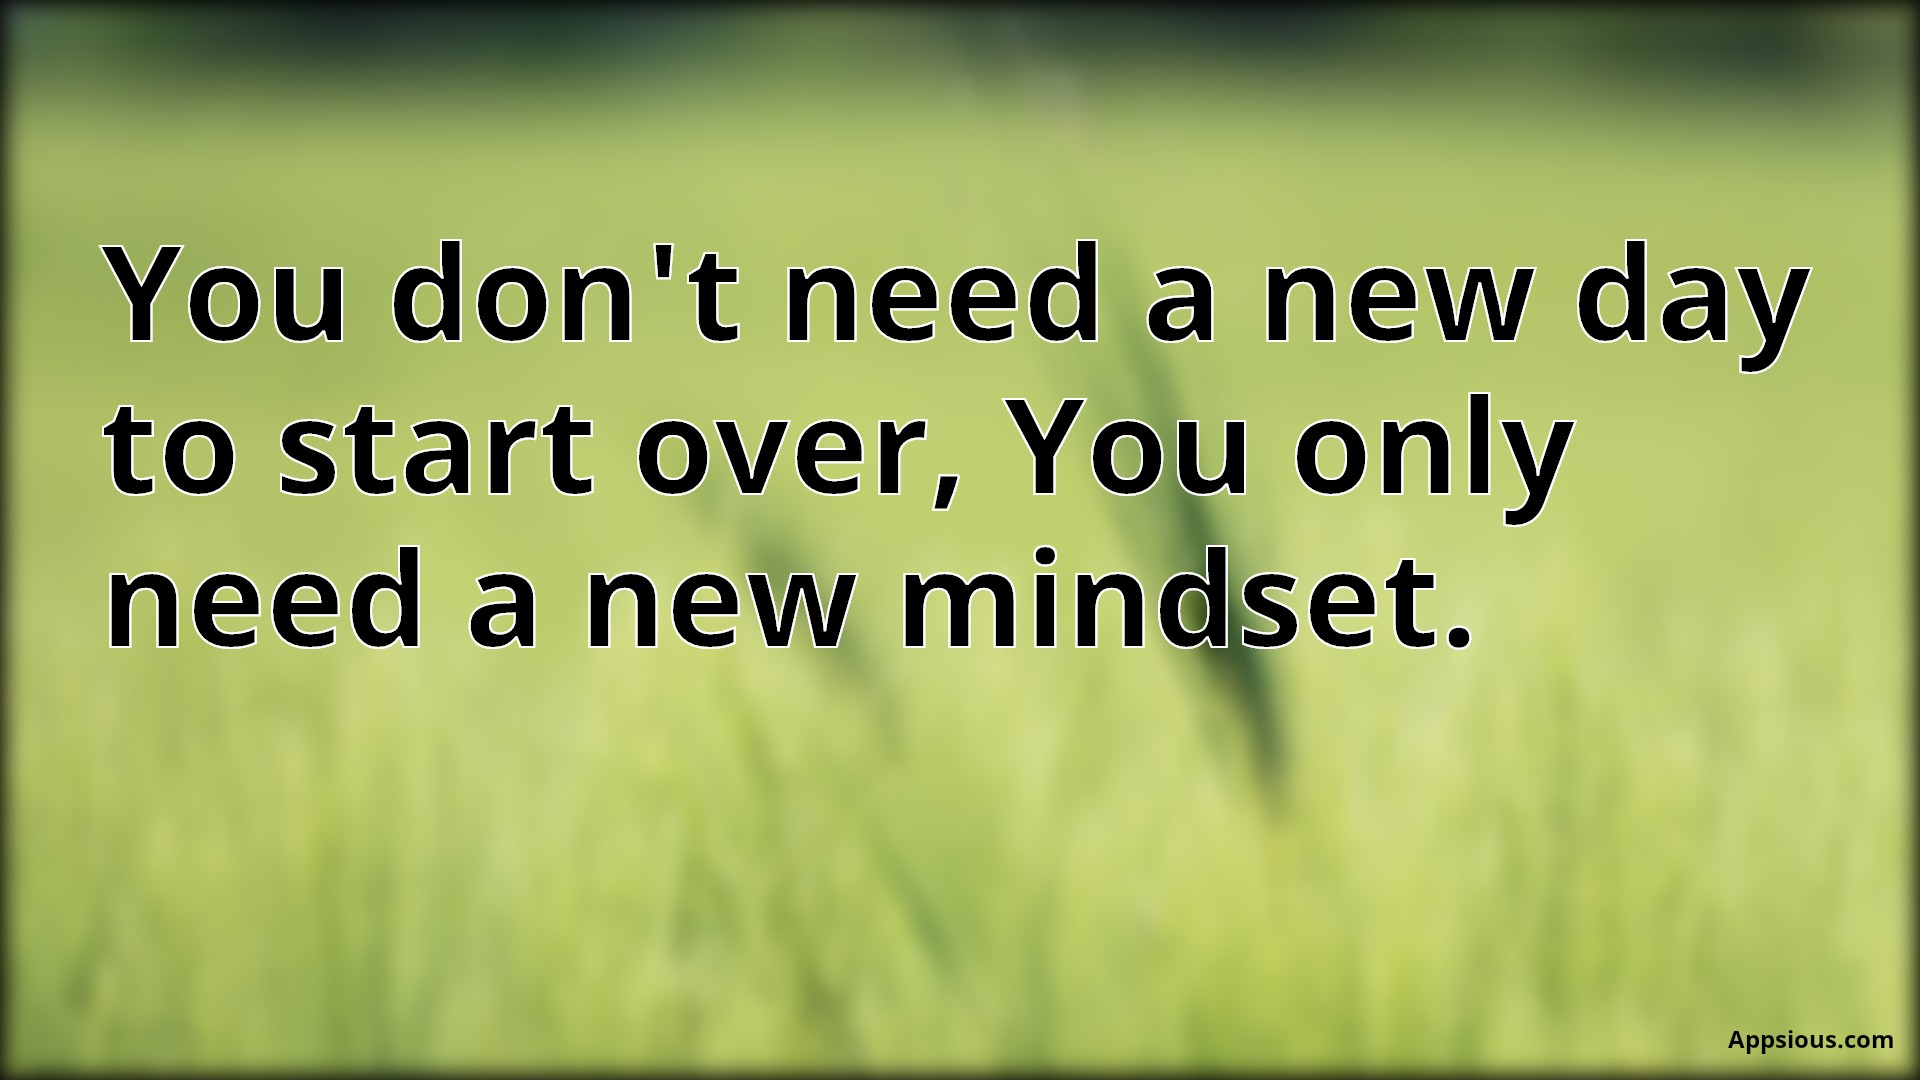 You don't need a new day to start over, You only need a new mindset.